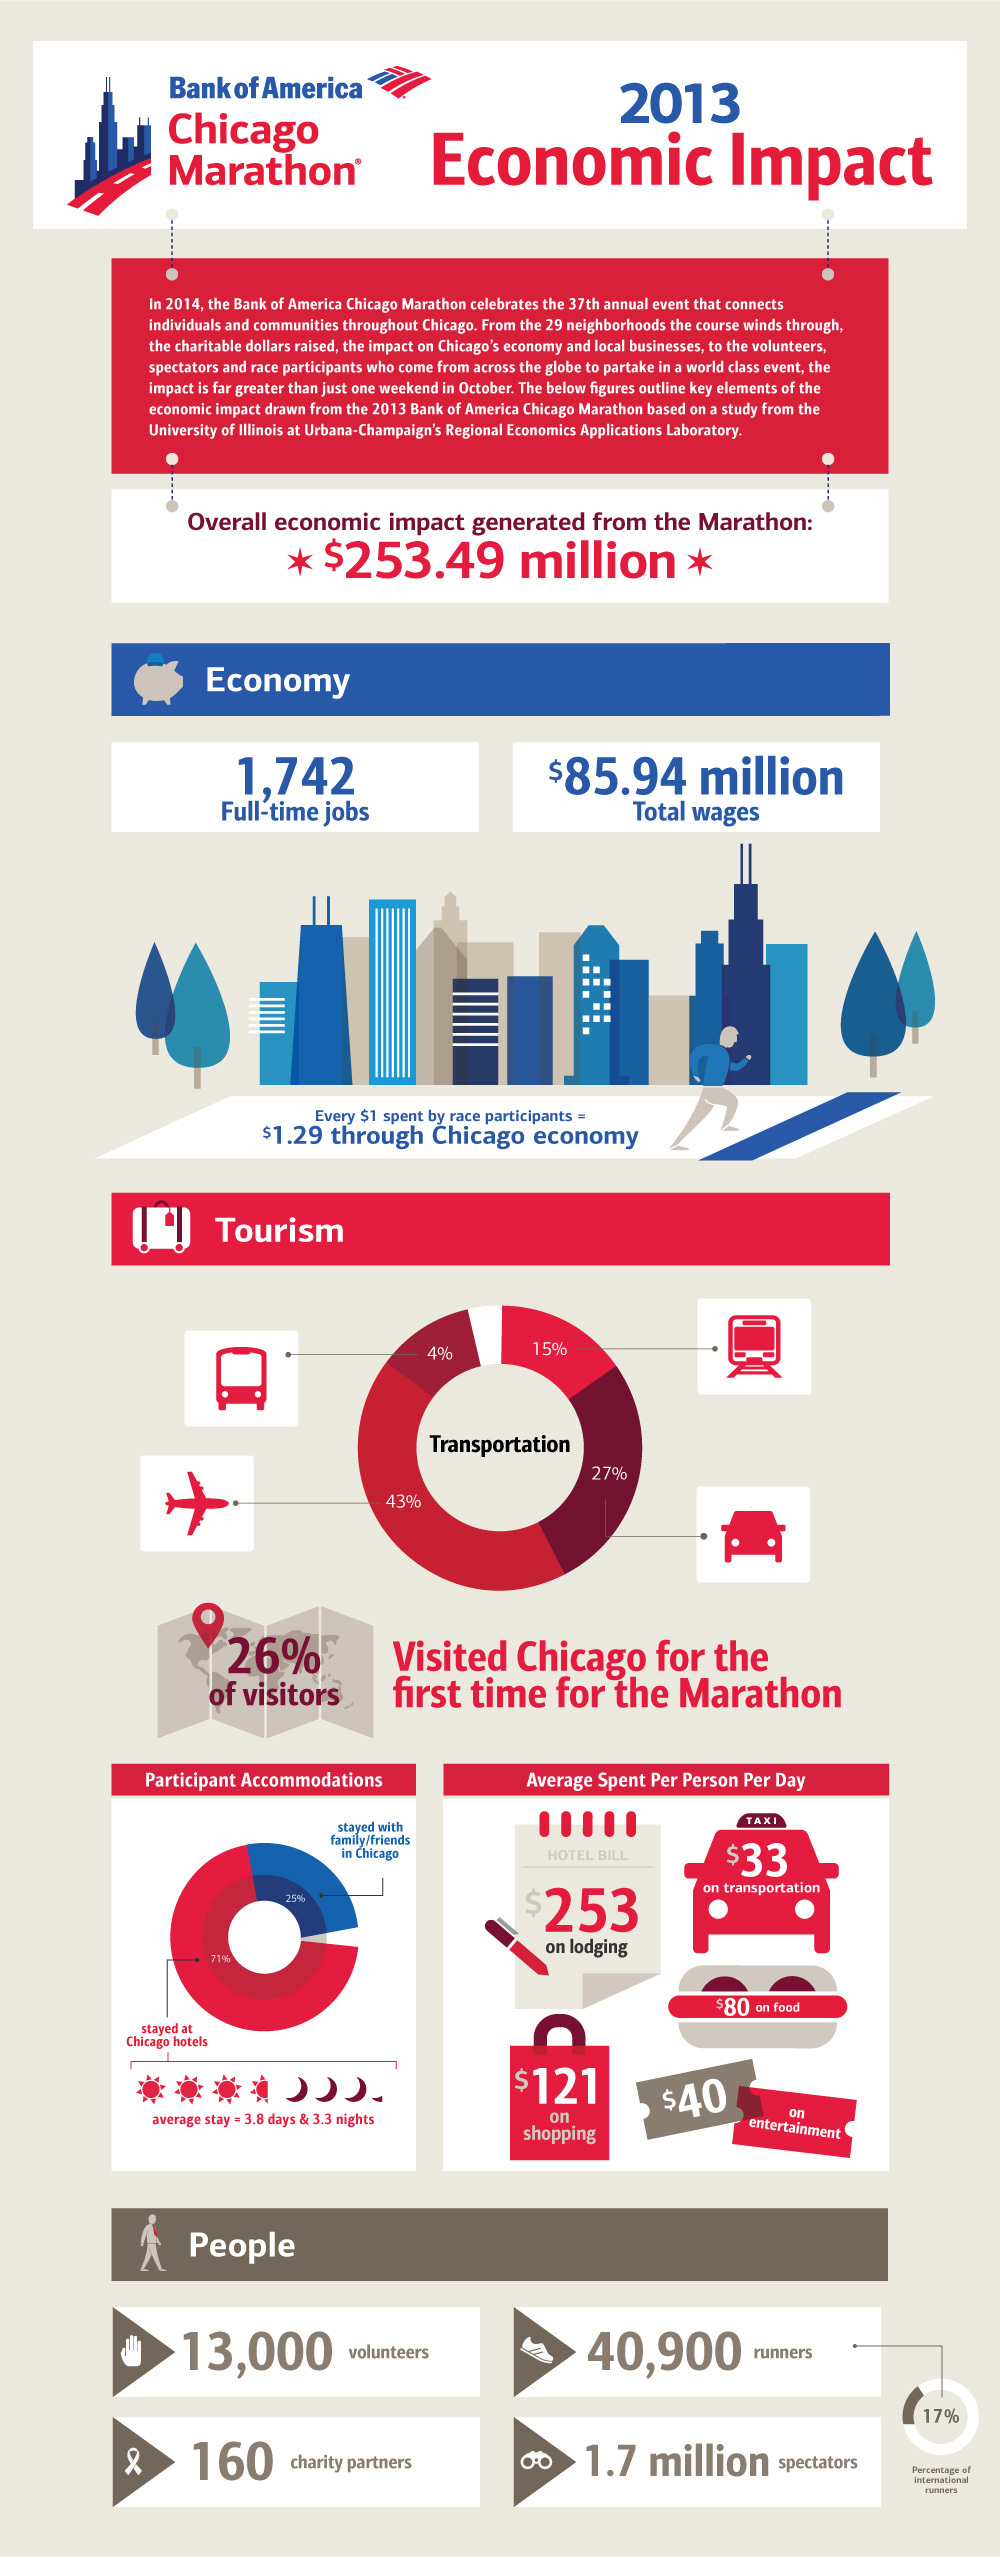 The 2013 Bank of America Chicago Marathon brought an estimated $253.49 million in total business activity to the Chicago economy. Image shows the further breakdown of impact of the 2013 Bank of America Chicago Marathon on the economy and tourism, as well the range of people - from spectators, to runners to volunteers - that influence the economic outcome of the race. (Graphic: Business Wire)